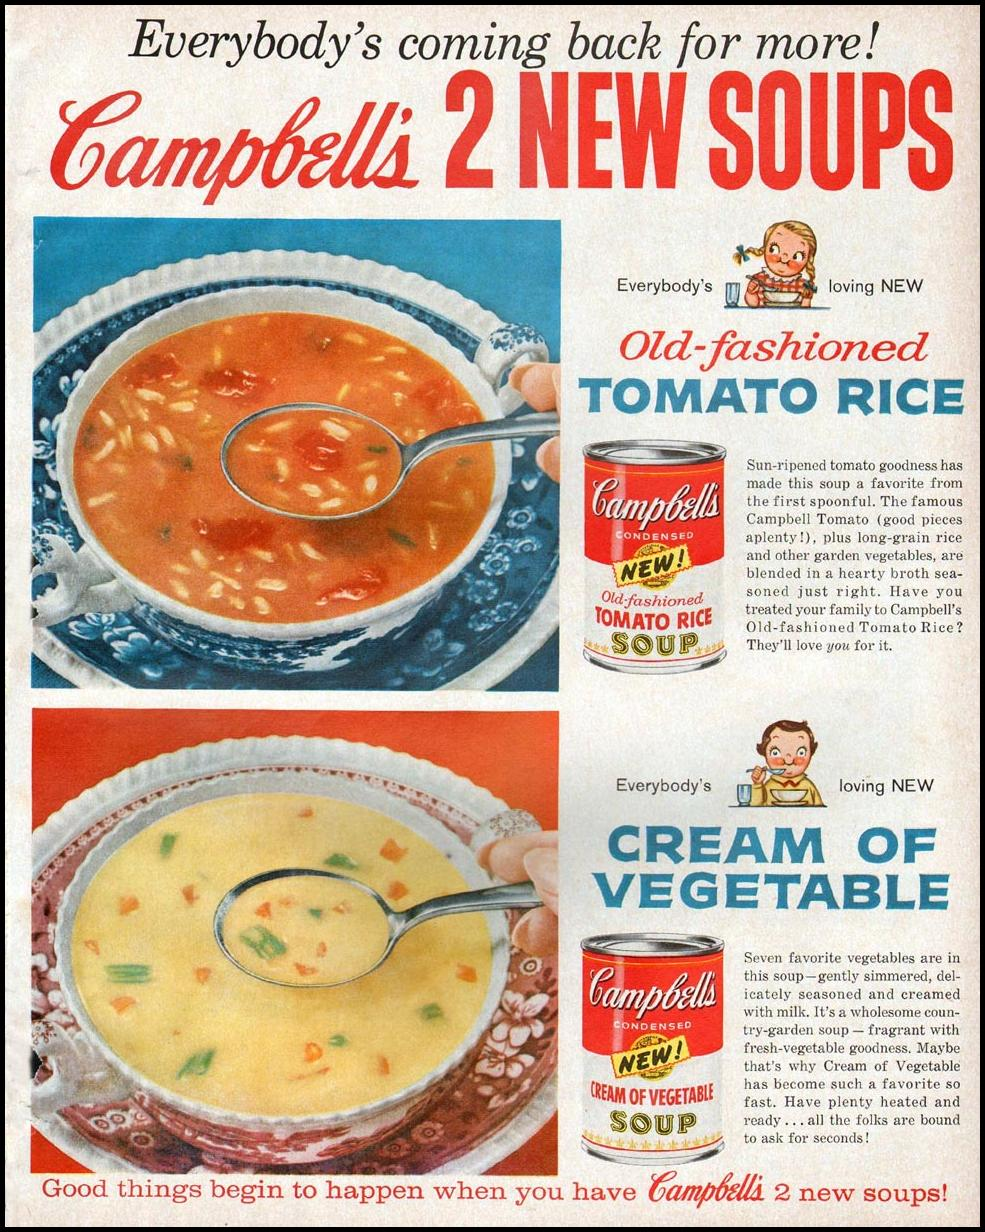 CAMPBELL'S SOUPS BETTER HOMES AND GARDENS 03/01/1960 p. 83